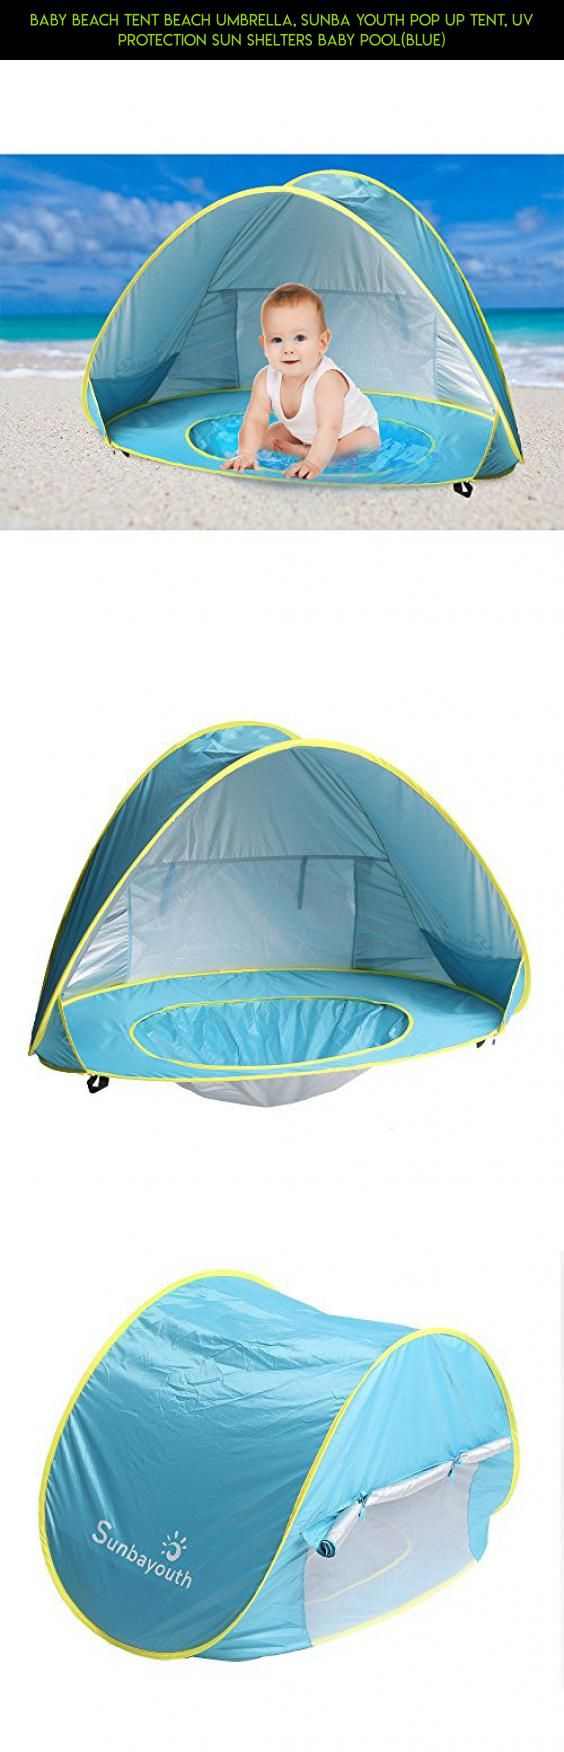 Baby Beach Tent Beach Umbrella, Sunba Youth Pop Up Tent, UV Protection Sun Shelters Baby Pool(Blue) #gadgets #fpv #kit #racing #products #baby #shopping #plans #technology #drone #parts #pools #tech #camera